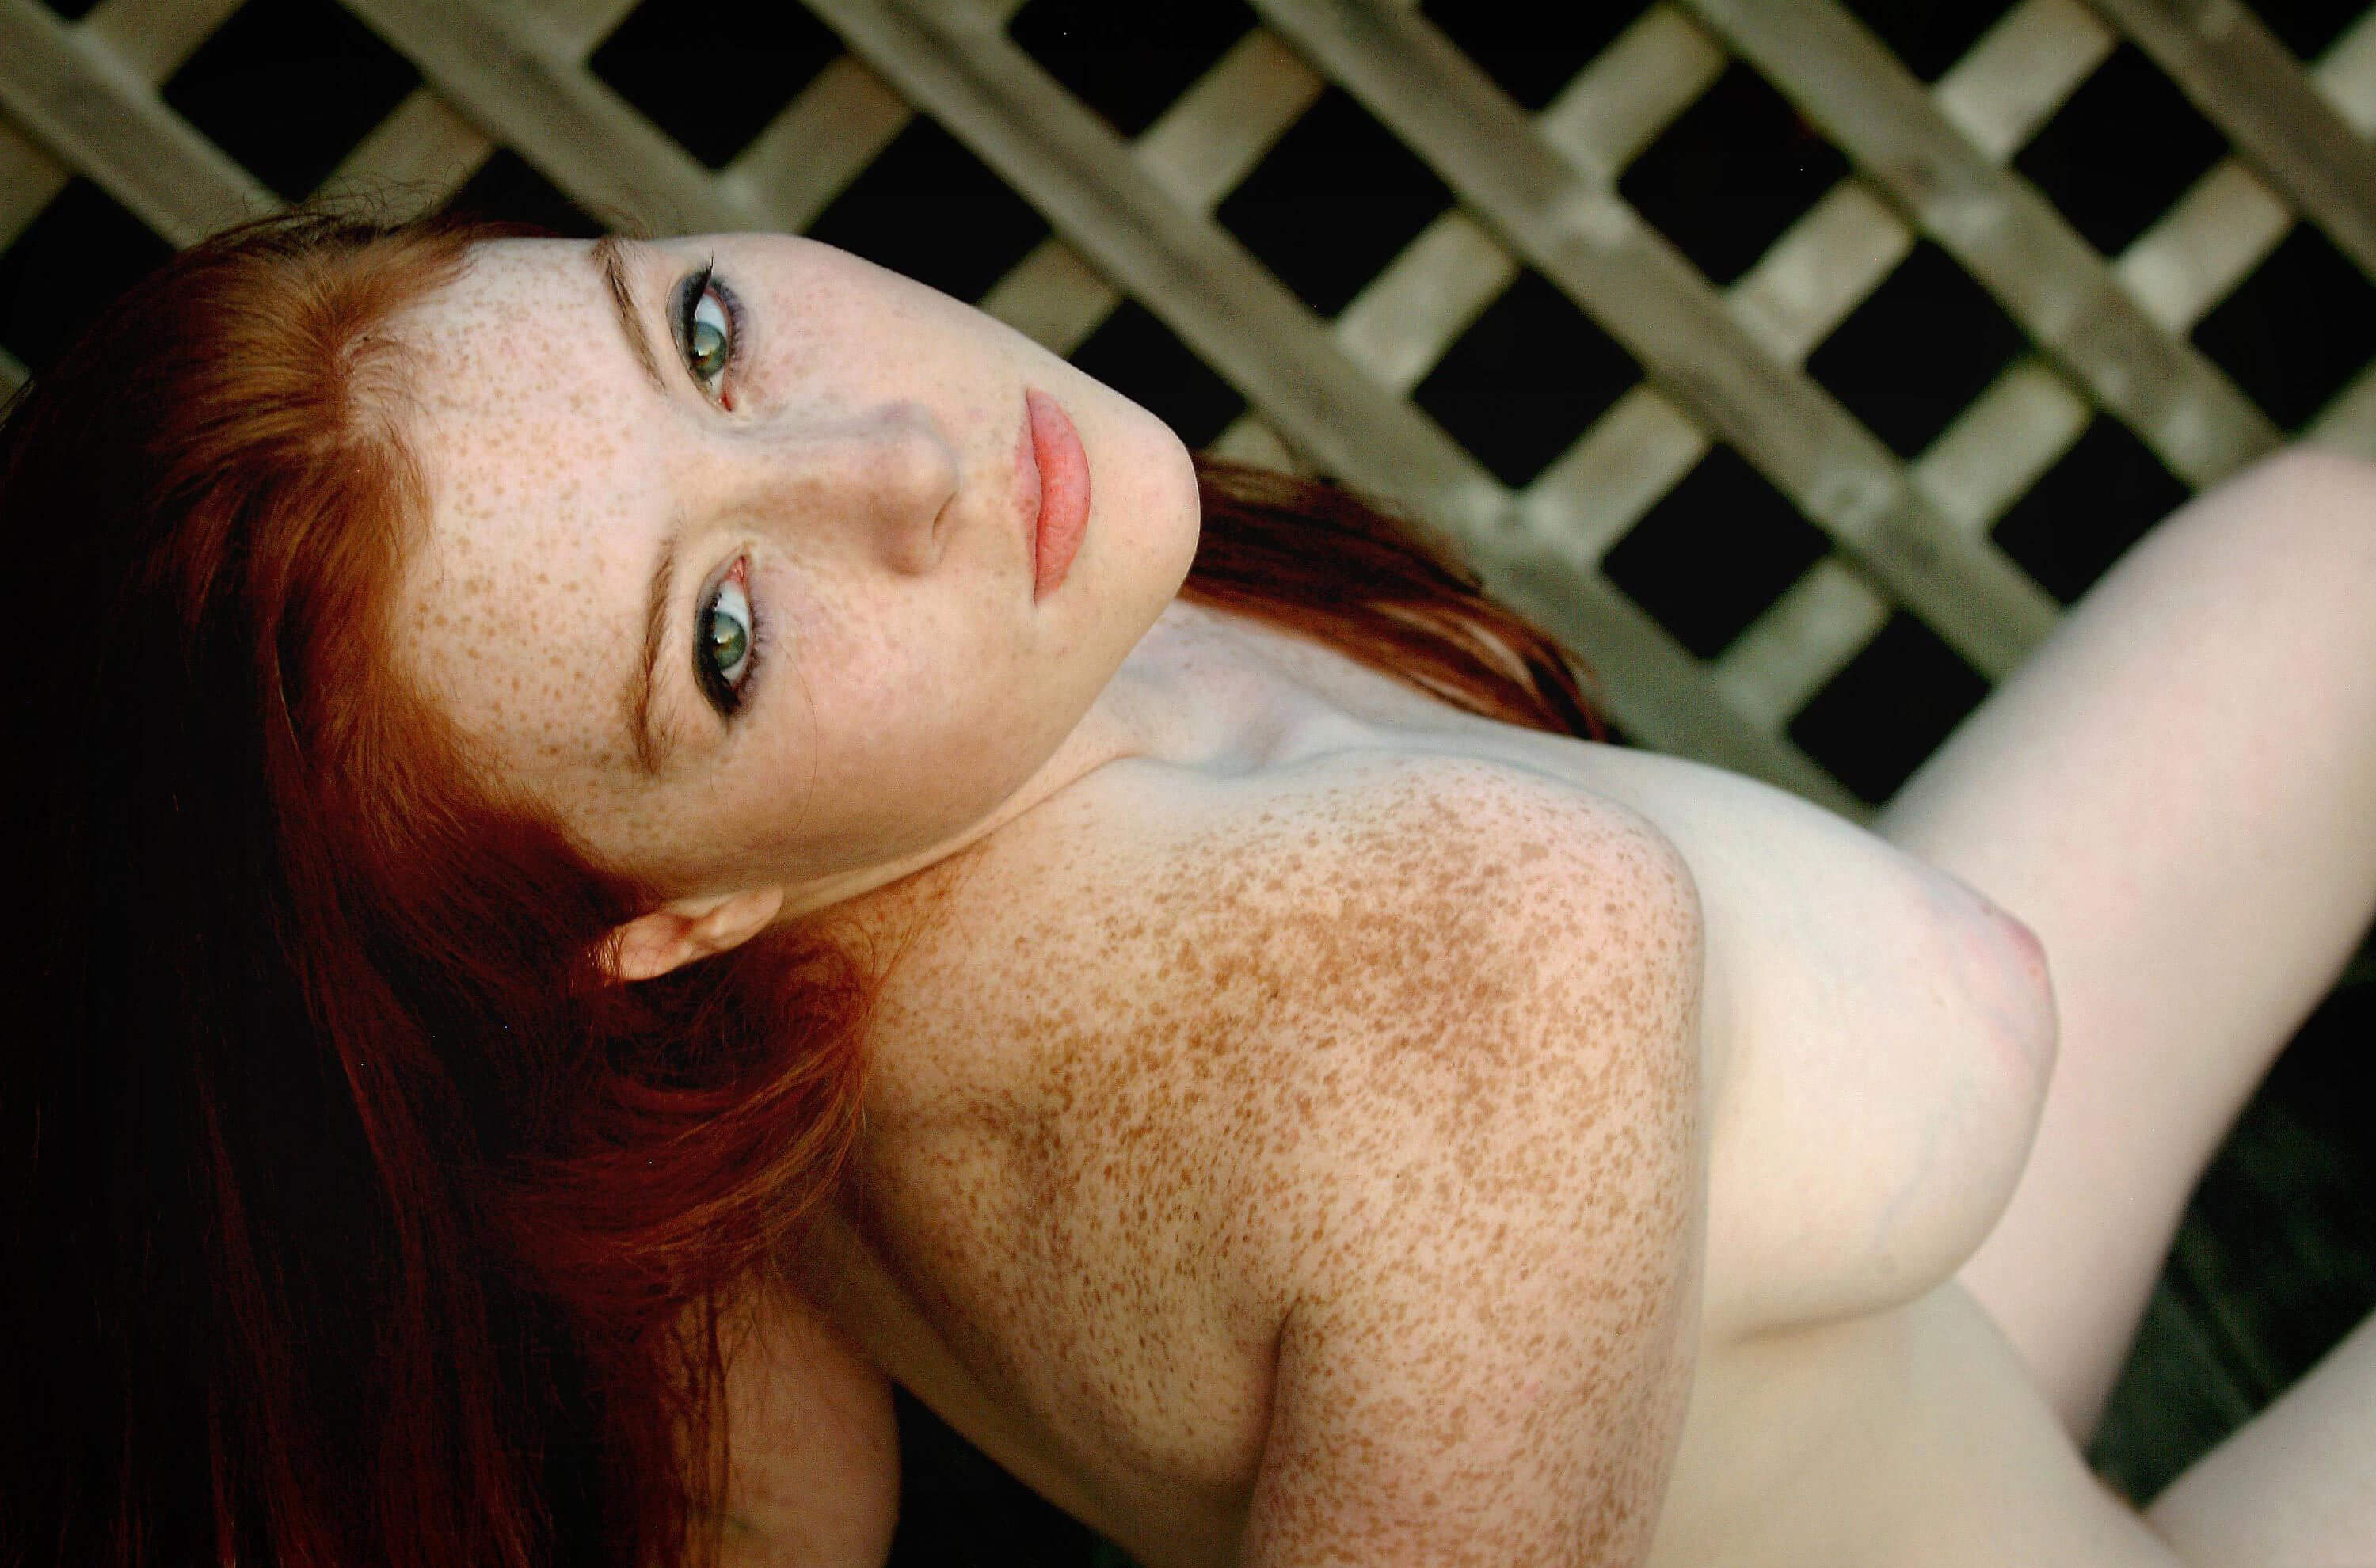 Girl with freckles nude sorry, all